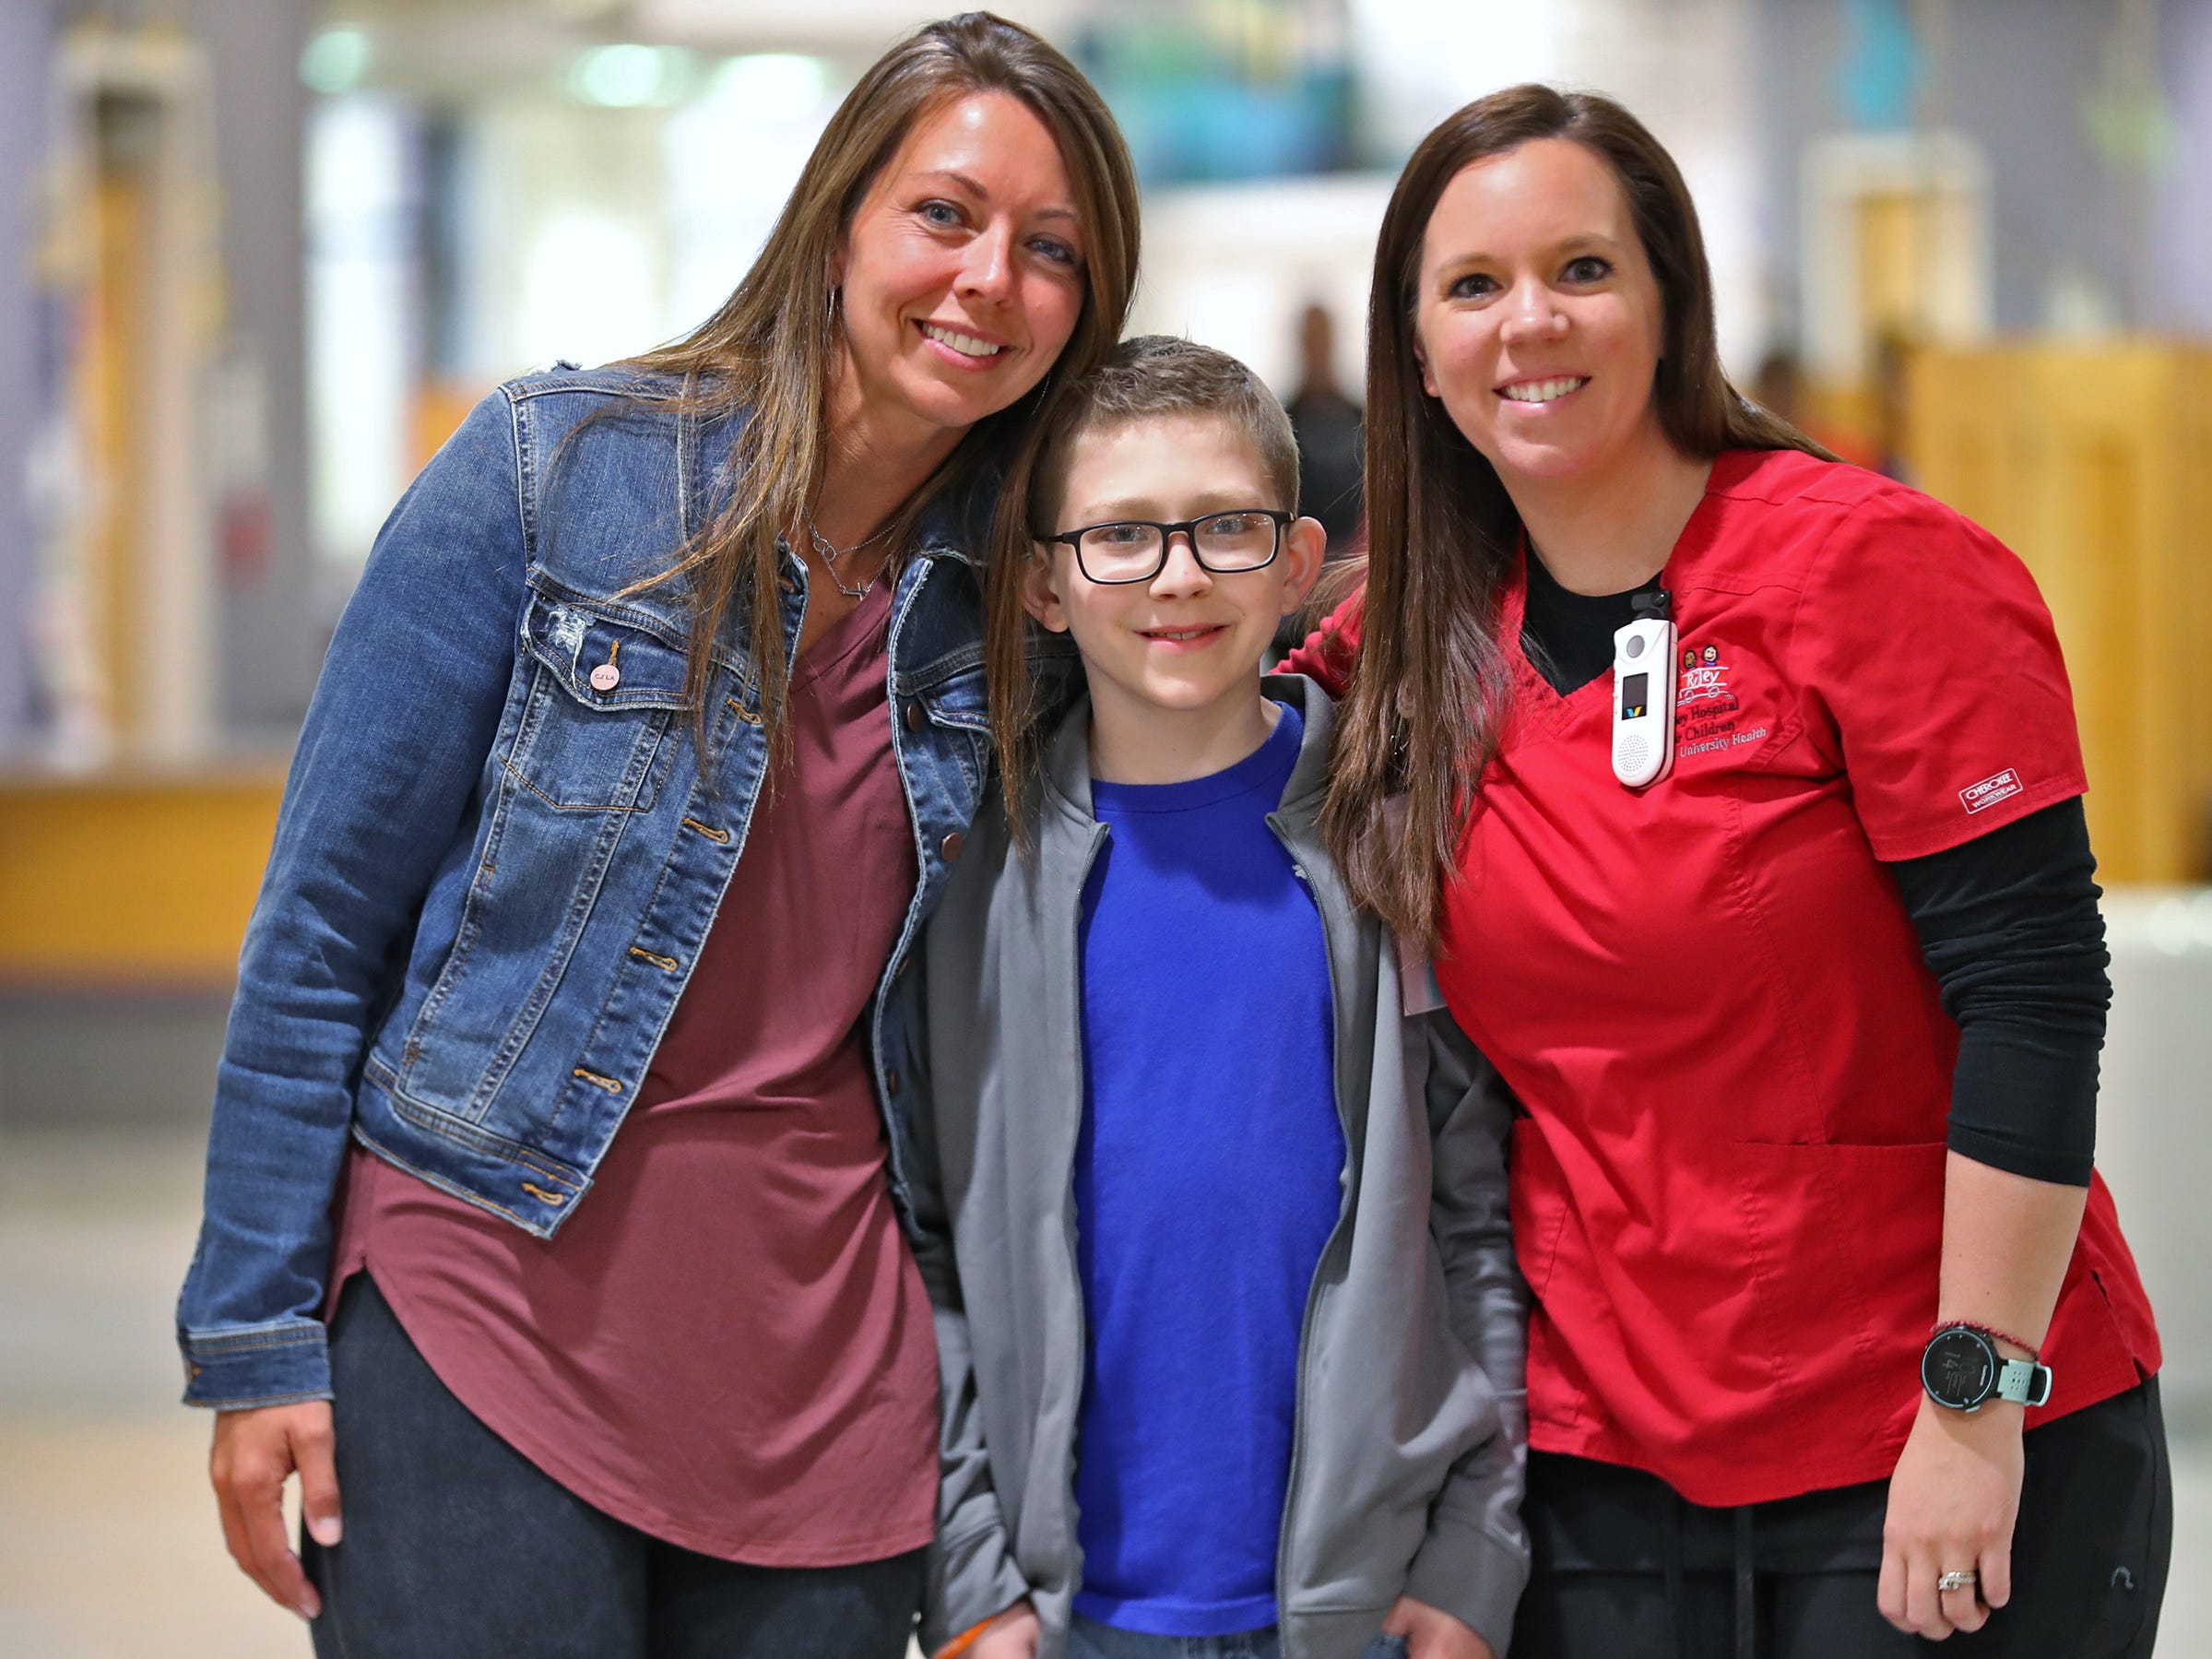 Cameron Kirk, center, poses with his mother Carrie Kirk, left, and his nurse and family friend Rhea Watson at the Center for Pediatric Cancer and Blood Disorders at the Riley Outpatient Center, Friday, April 19, 2019.  Watson was treated for leukemia when she was younger, diagnosed ten years ago, and now is an RN taking care of similar patients, like Cameron who has diagnosed with the same cancer one year ago.  Now Watson is hoping to be the Leukemia & Lymphoma Society Woman of the Year, in a fundraising effort which ends May 18, 2019.